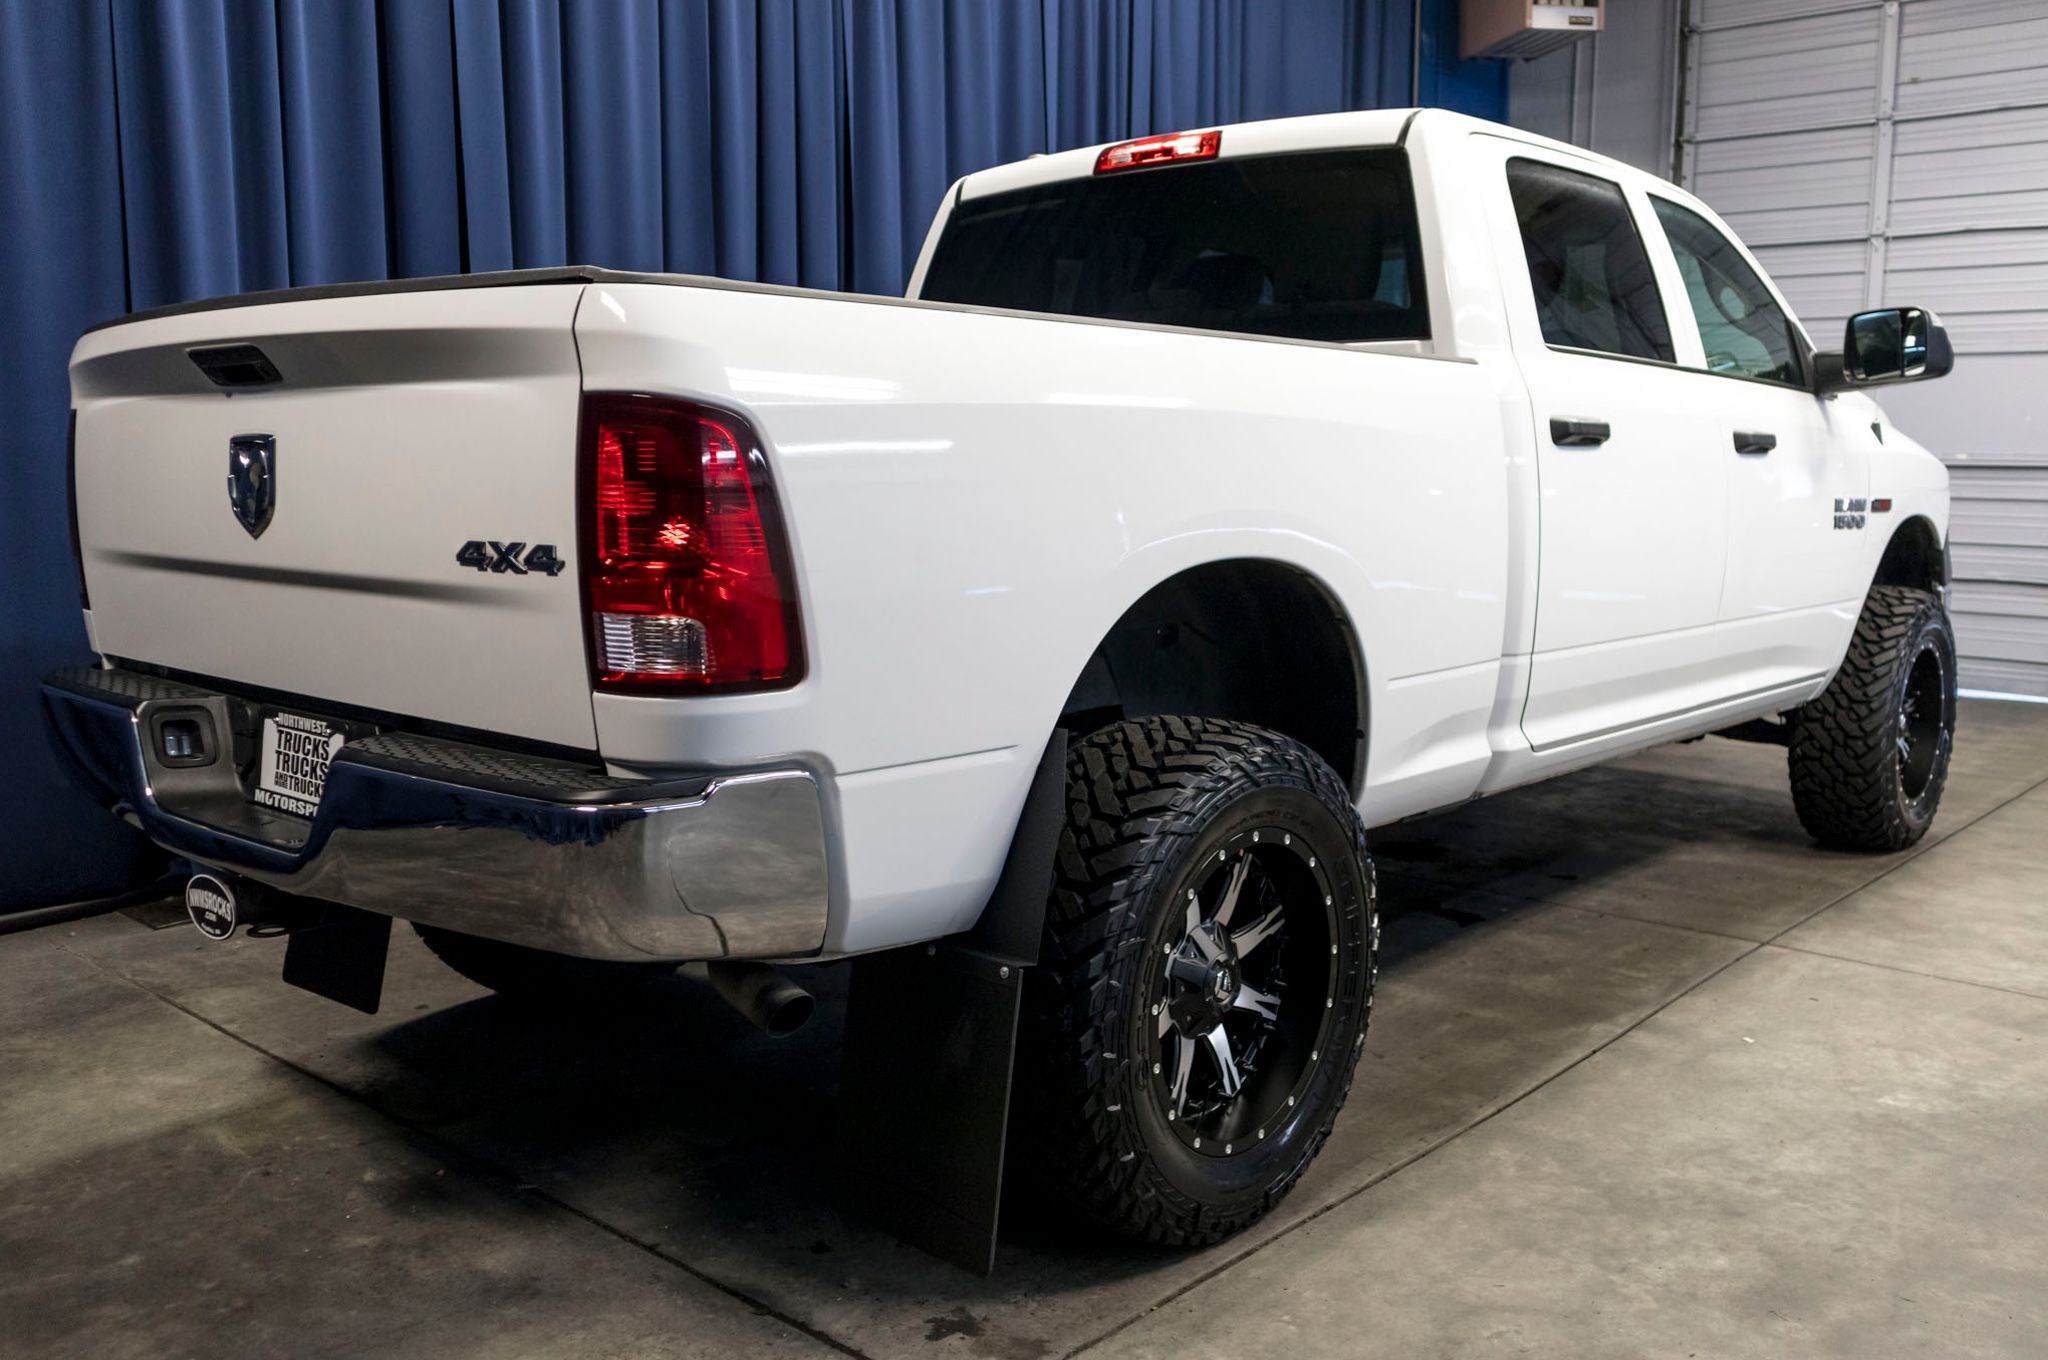 Used Ram 1500 Ecodiesel For Sale >> Used Lifted 2014 Dodge Ram 1500 Tradesman 4x4 Diesel Truck For Sale - 47280